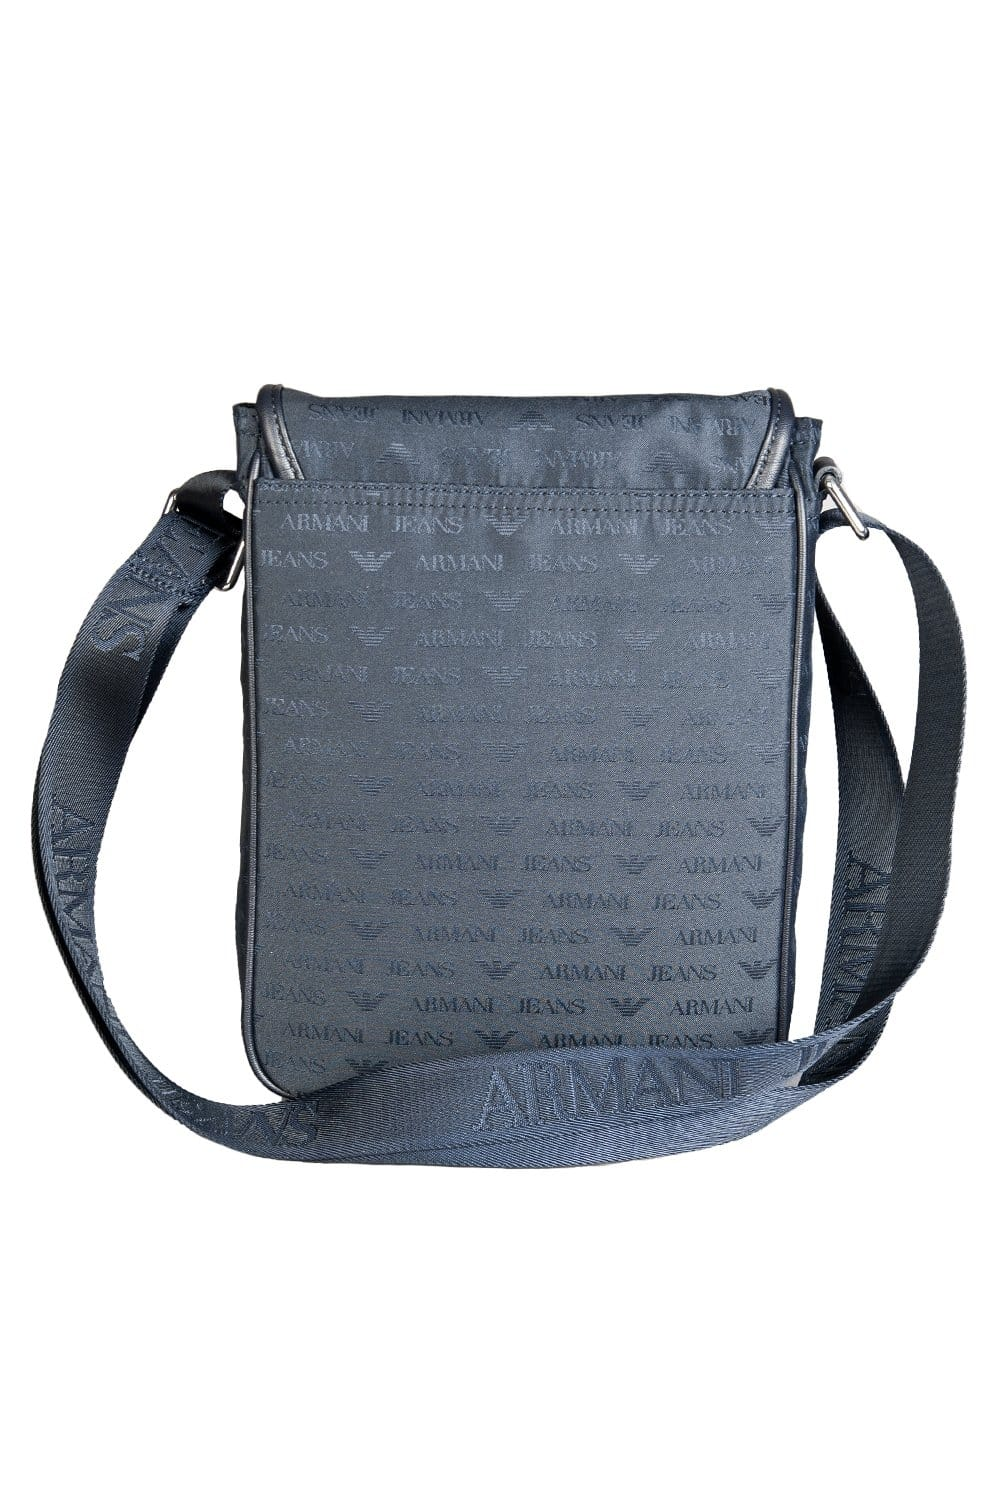 d8025e11b0f9 Armani AJ Logo Design Tablet Messenger Bag in Navy Blue .